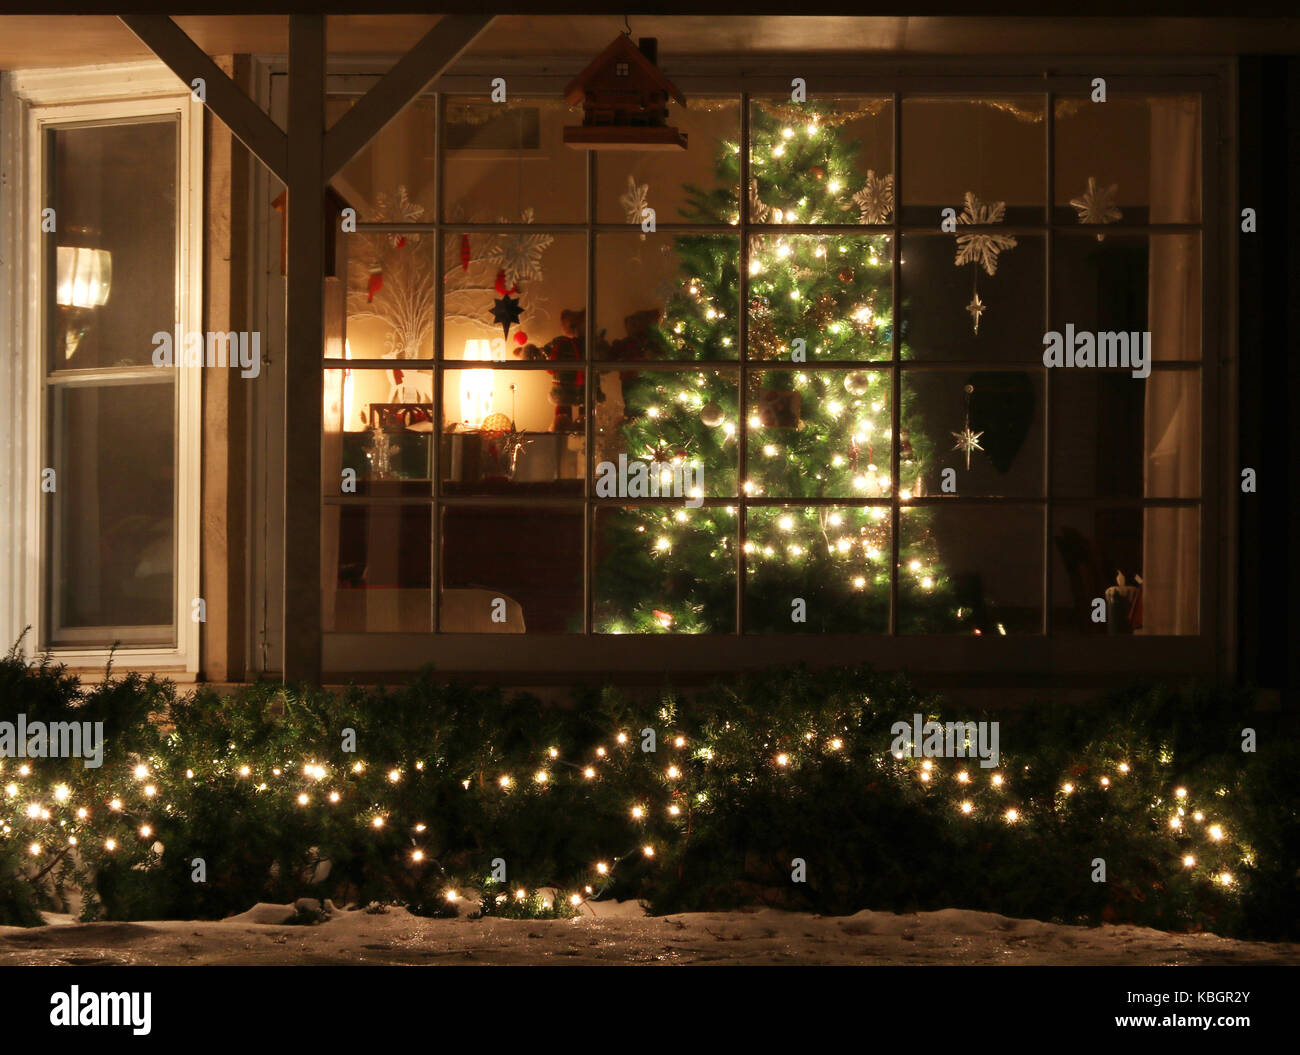 window with decorated glowing christmas tree inside a house and bright outdoor decorations night scene light blur christmas and new year holidays b